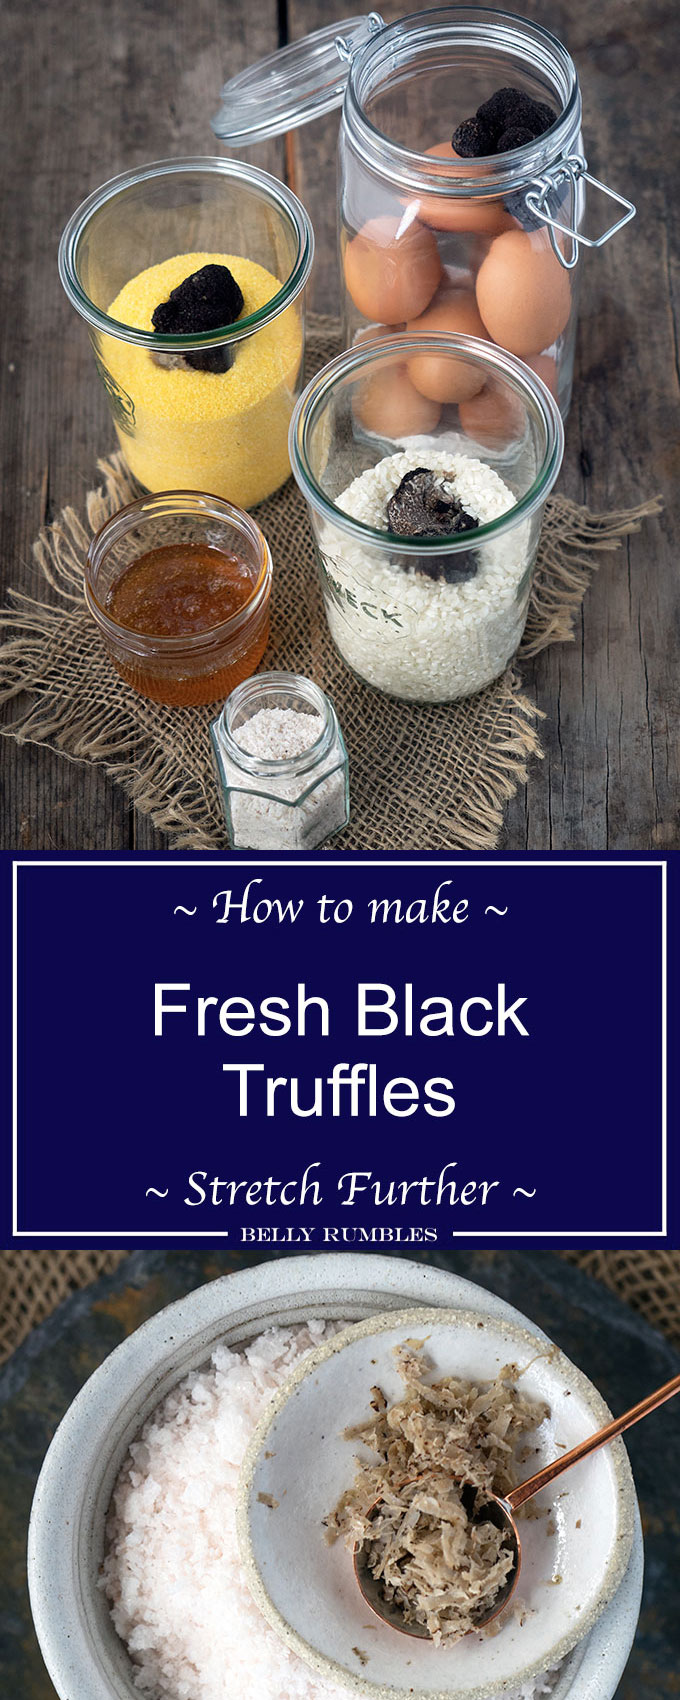 Fantastic tips on how to make fresh black truffles stretch further